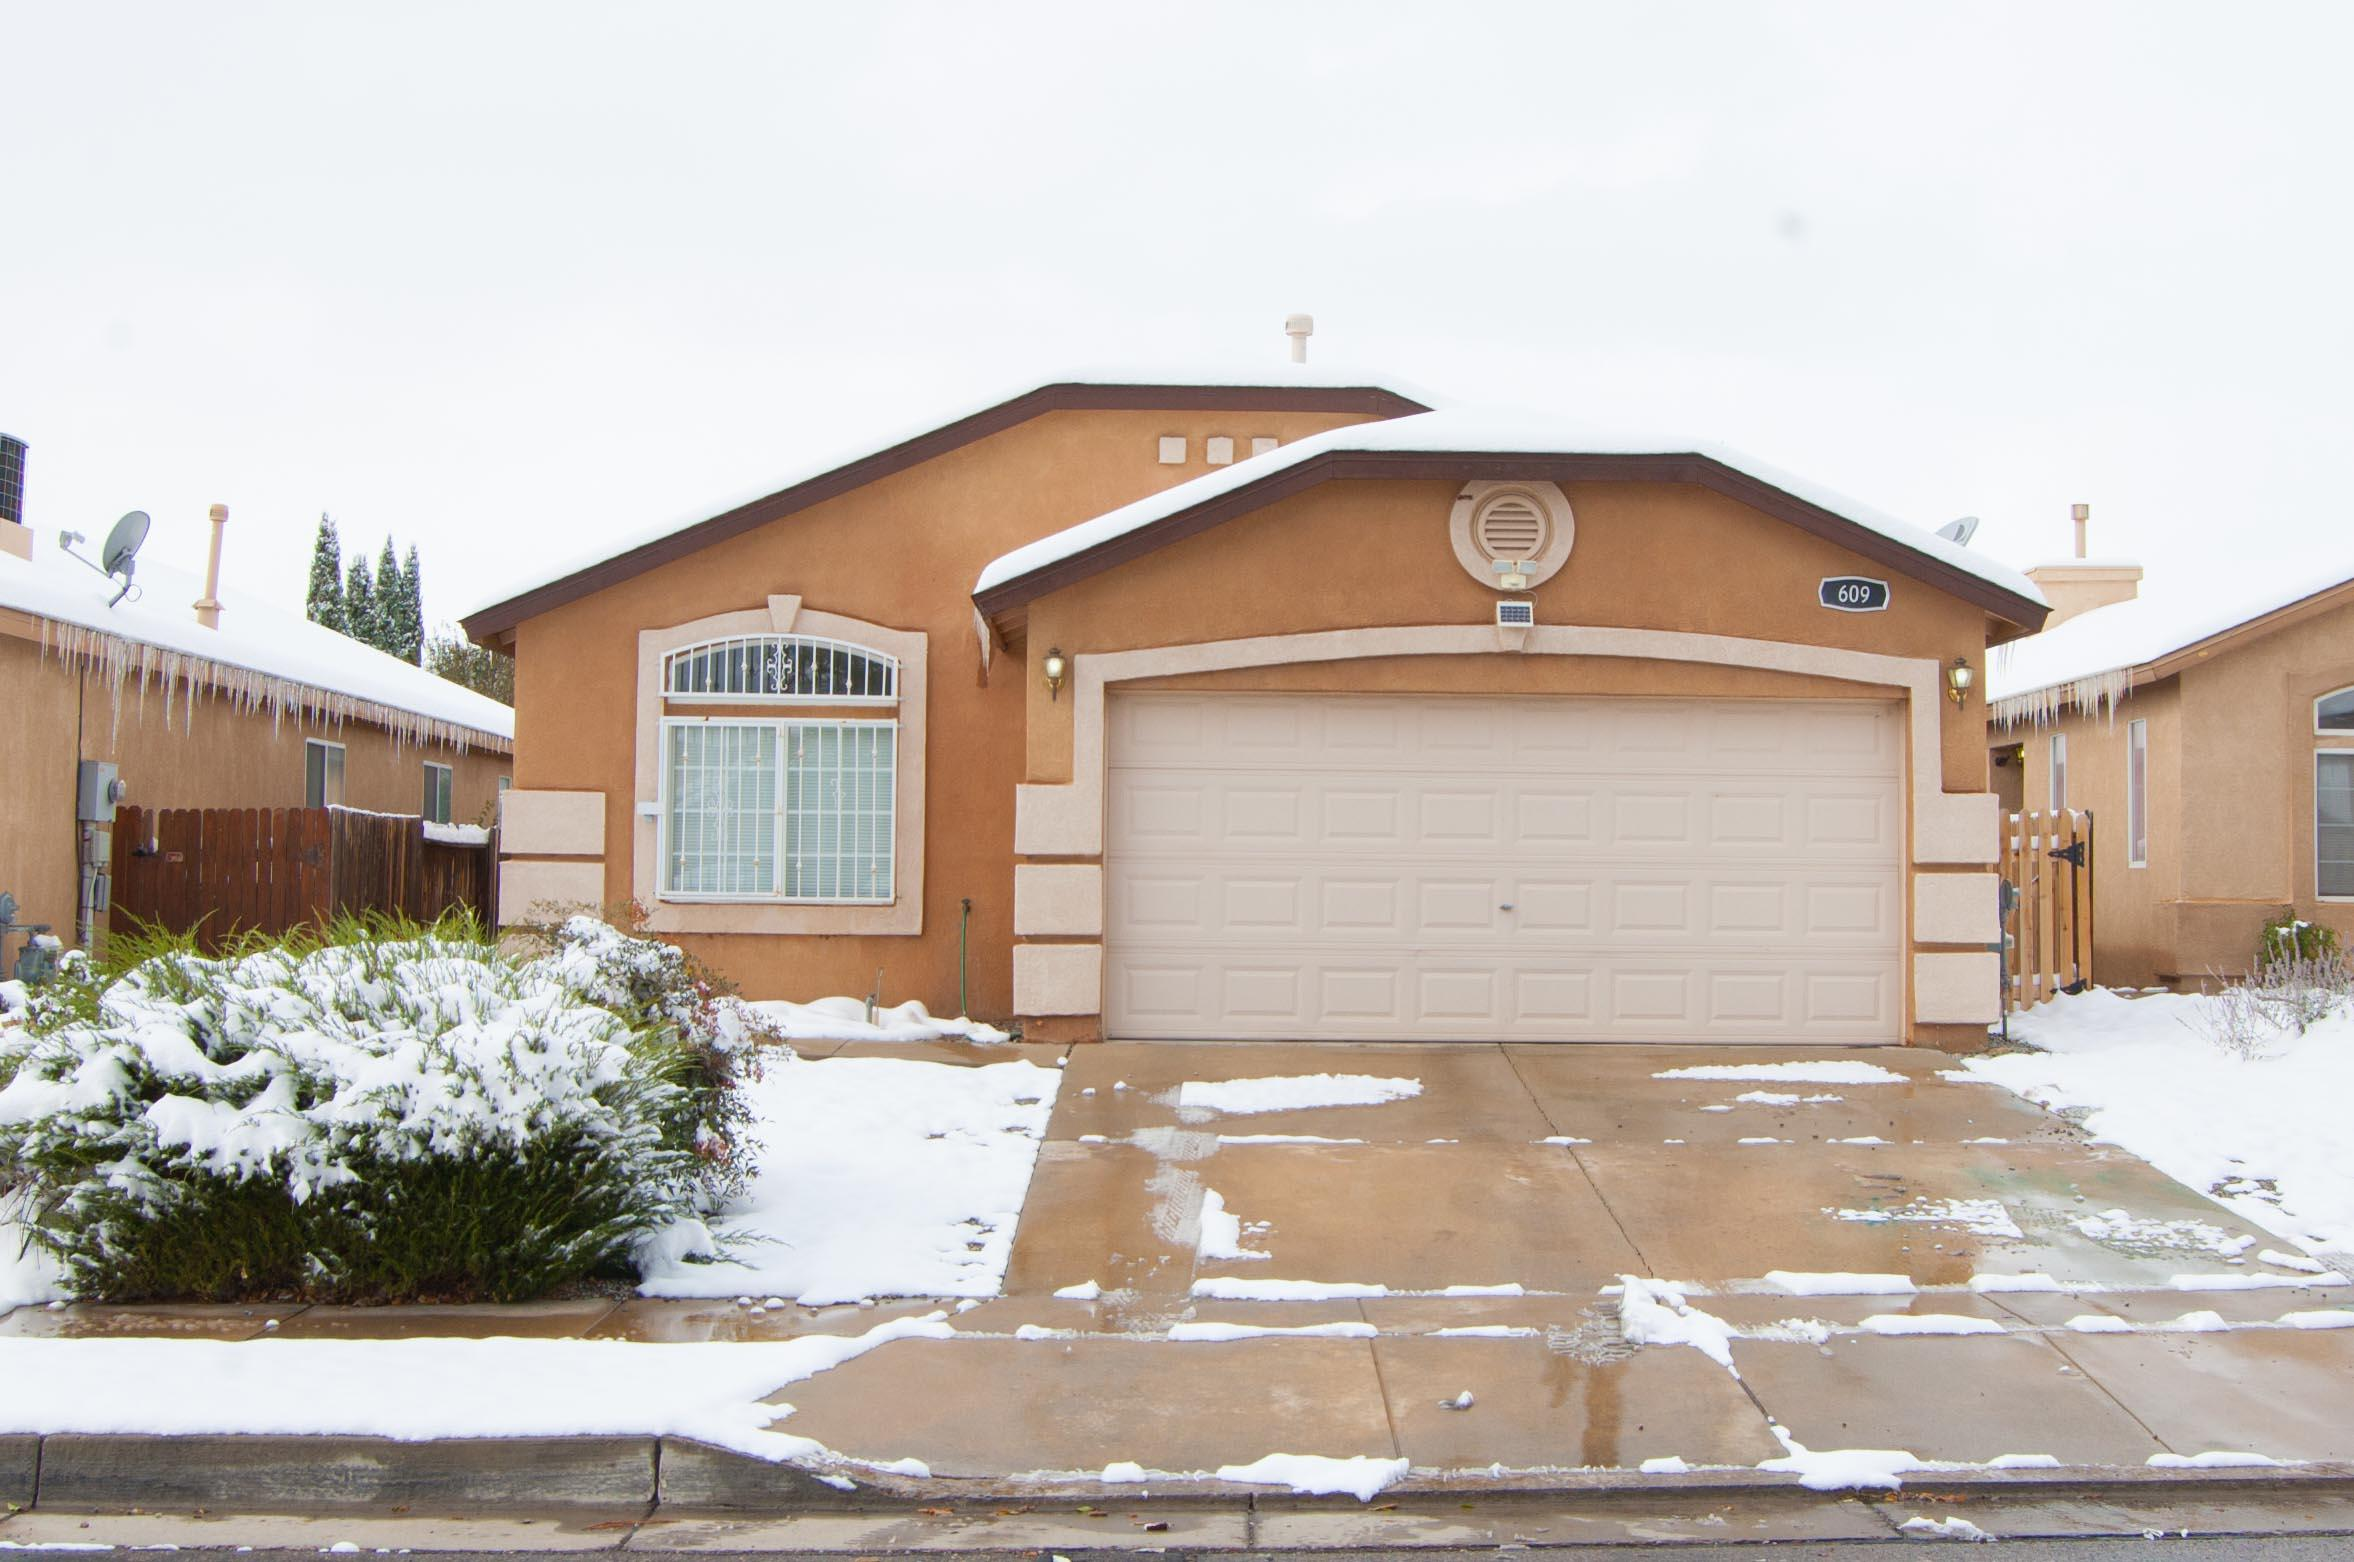 Beautiful home in the Sunrise Ranch community. The home is well kept and ready to move in with new carpet, Large master bath with walk  in  shower and separate tub. This home is a must see. Make your private appointment to view today.